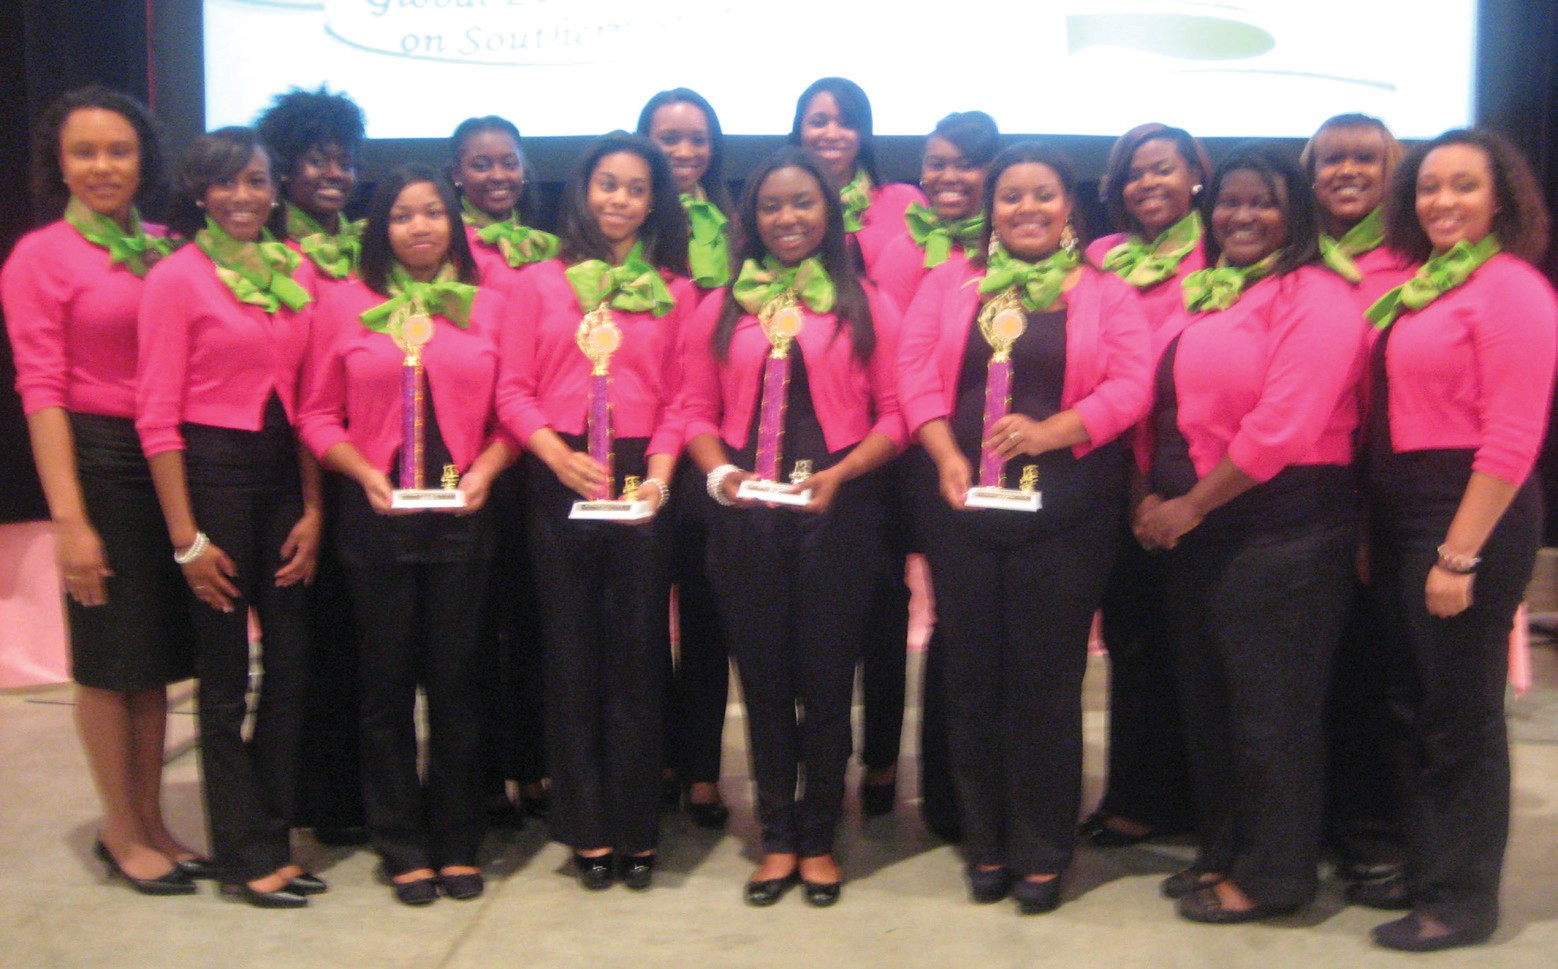 Sigma Tau member's of Alpha Kappa Alpha Sorority with trophies April 20th, 2013 at Regional Conference in North Charleston, South Carolina.